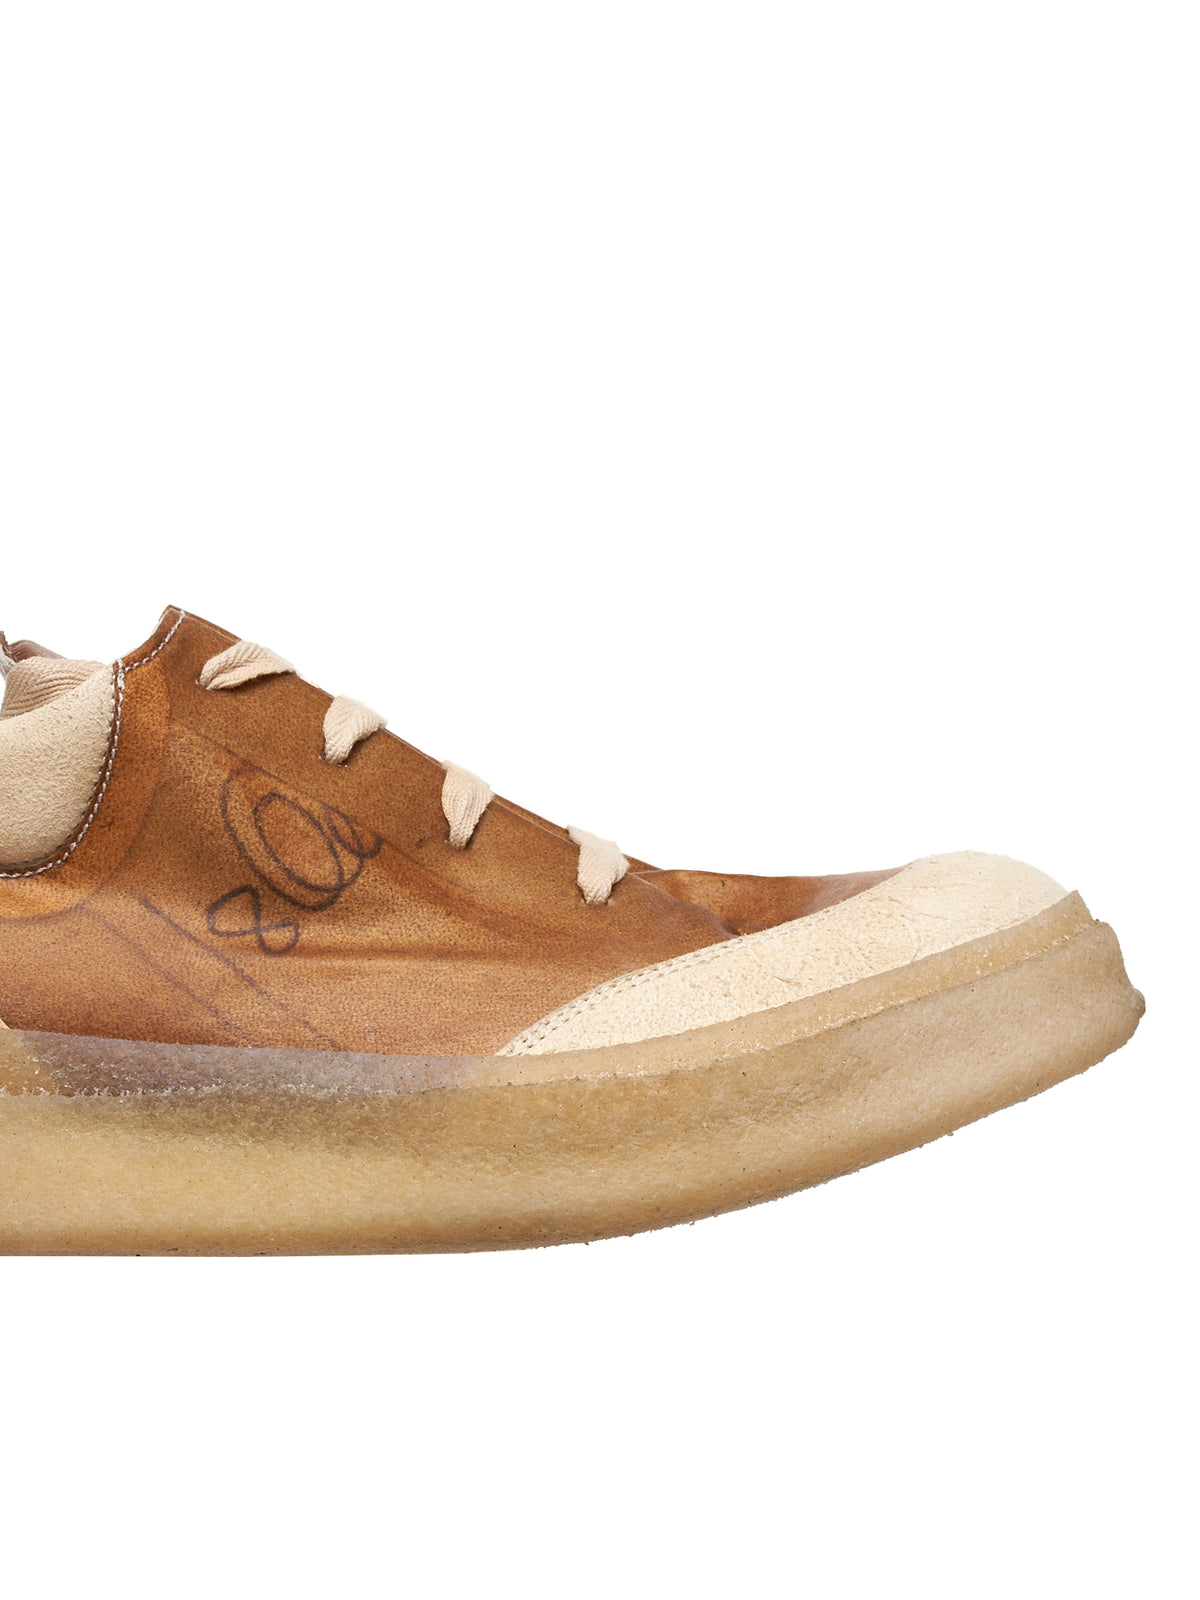 A Diciannoveventitre Distressed Sneakers - Hlorenzo Detail 2